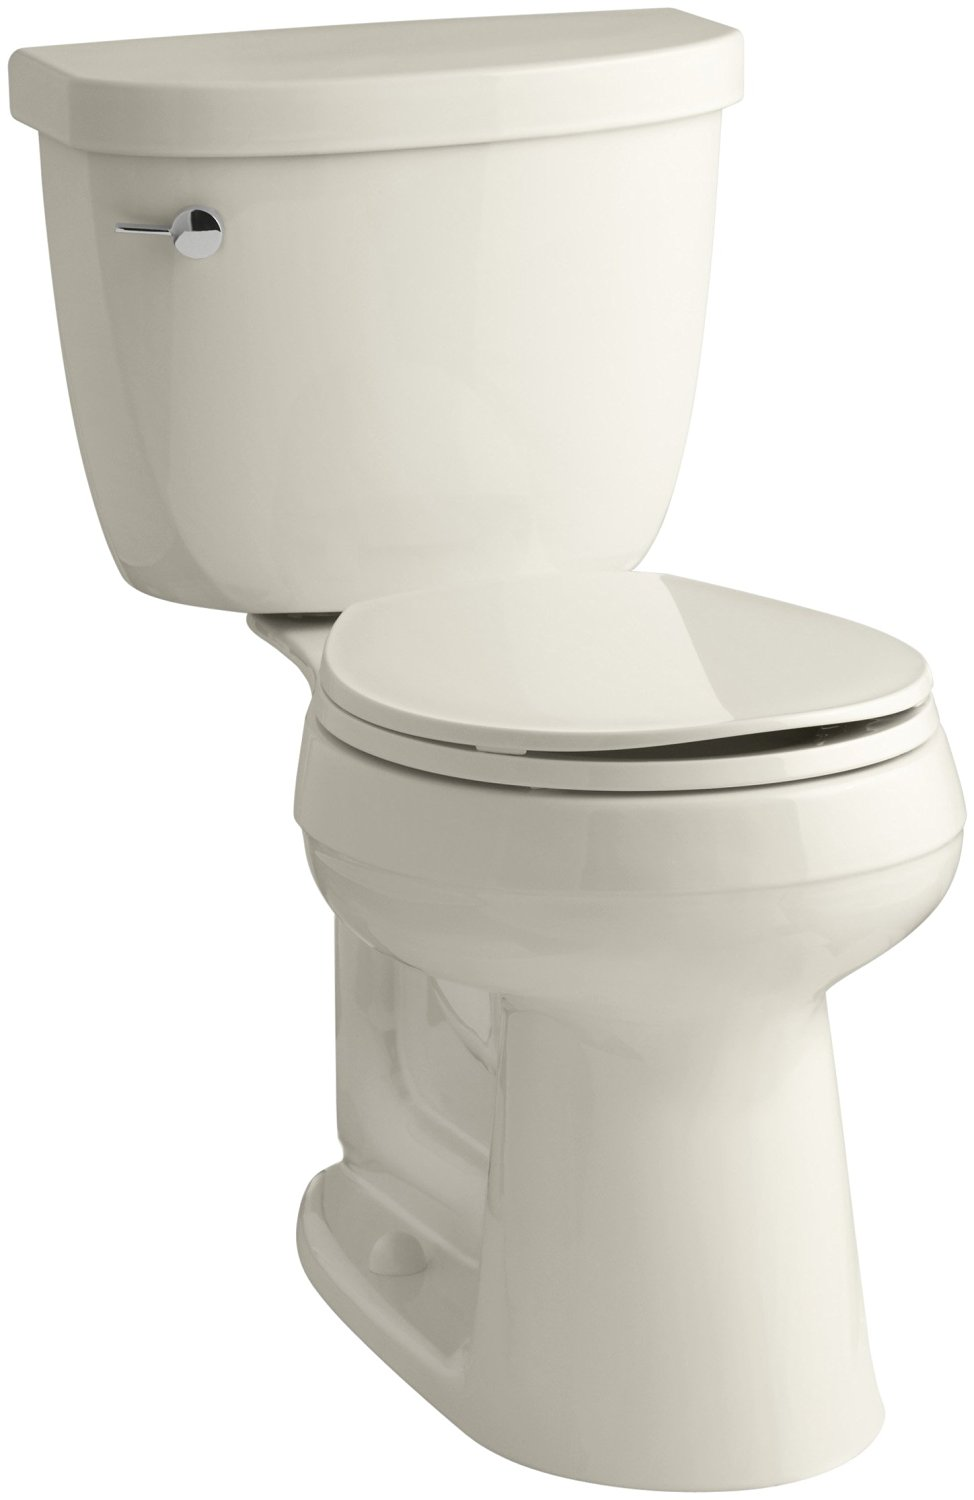 Top 10 Best Kohler Cimarron Toilet Reviews Your 2018 Guide